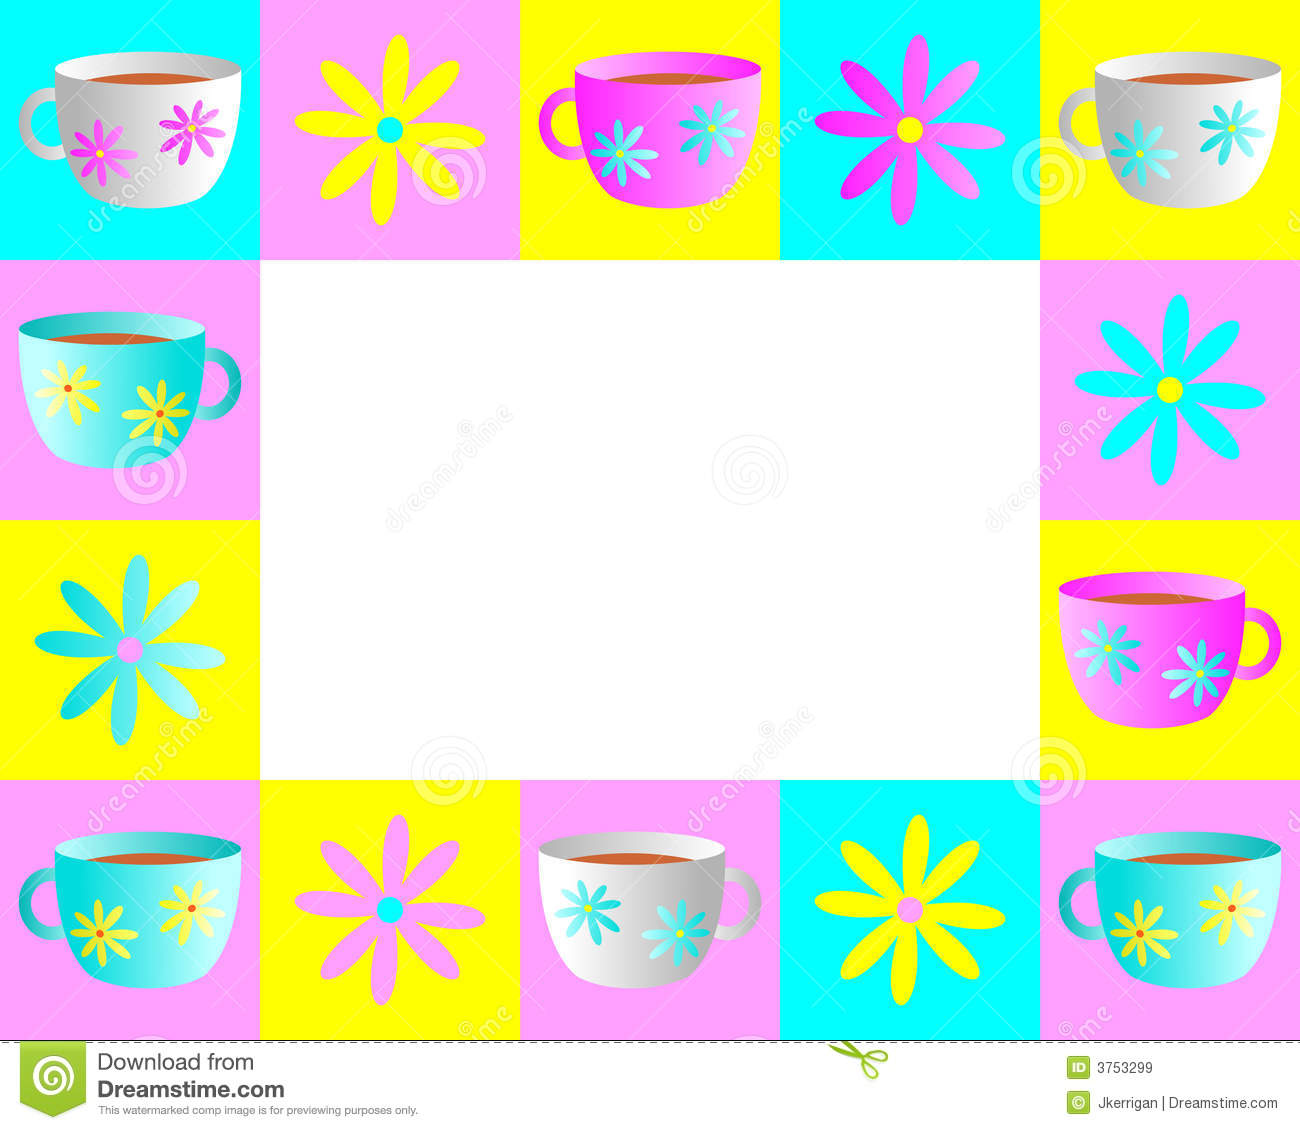 Illustrated frame of teacups and flowers in bright pastel colors.